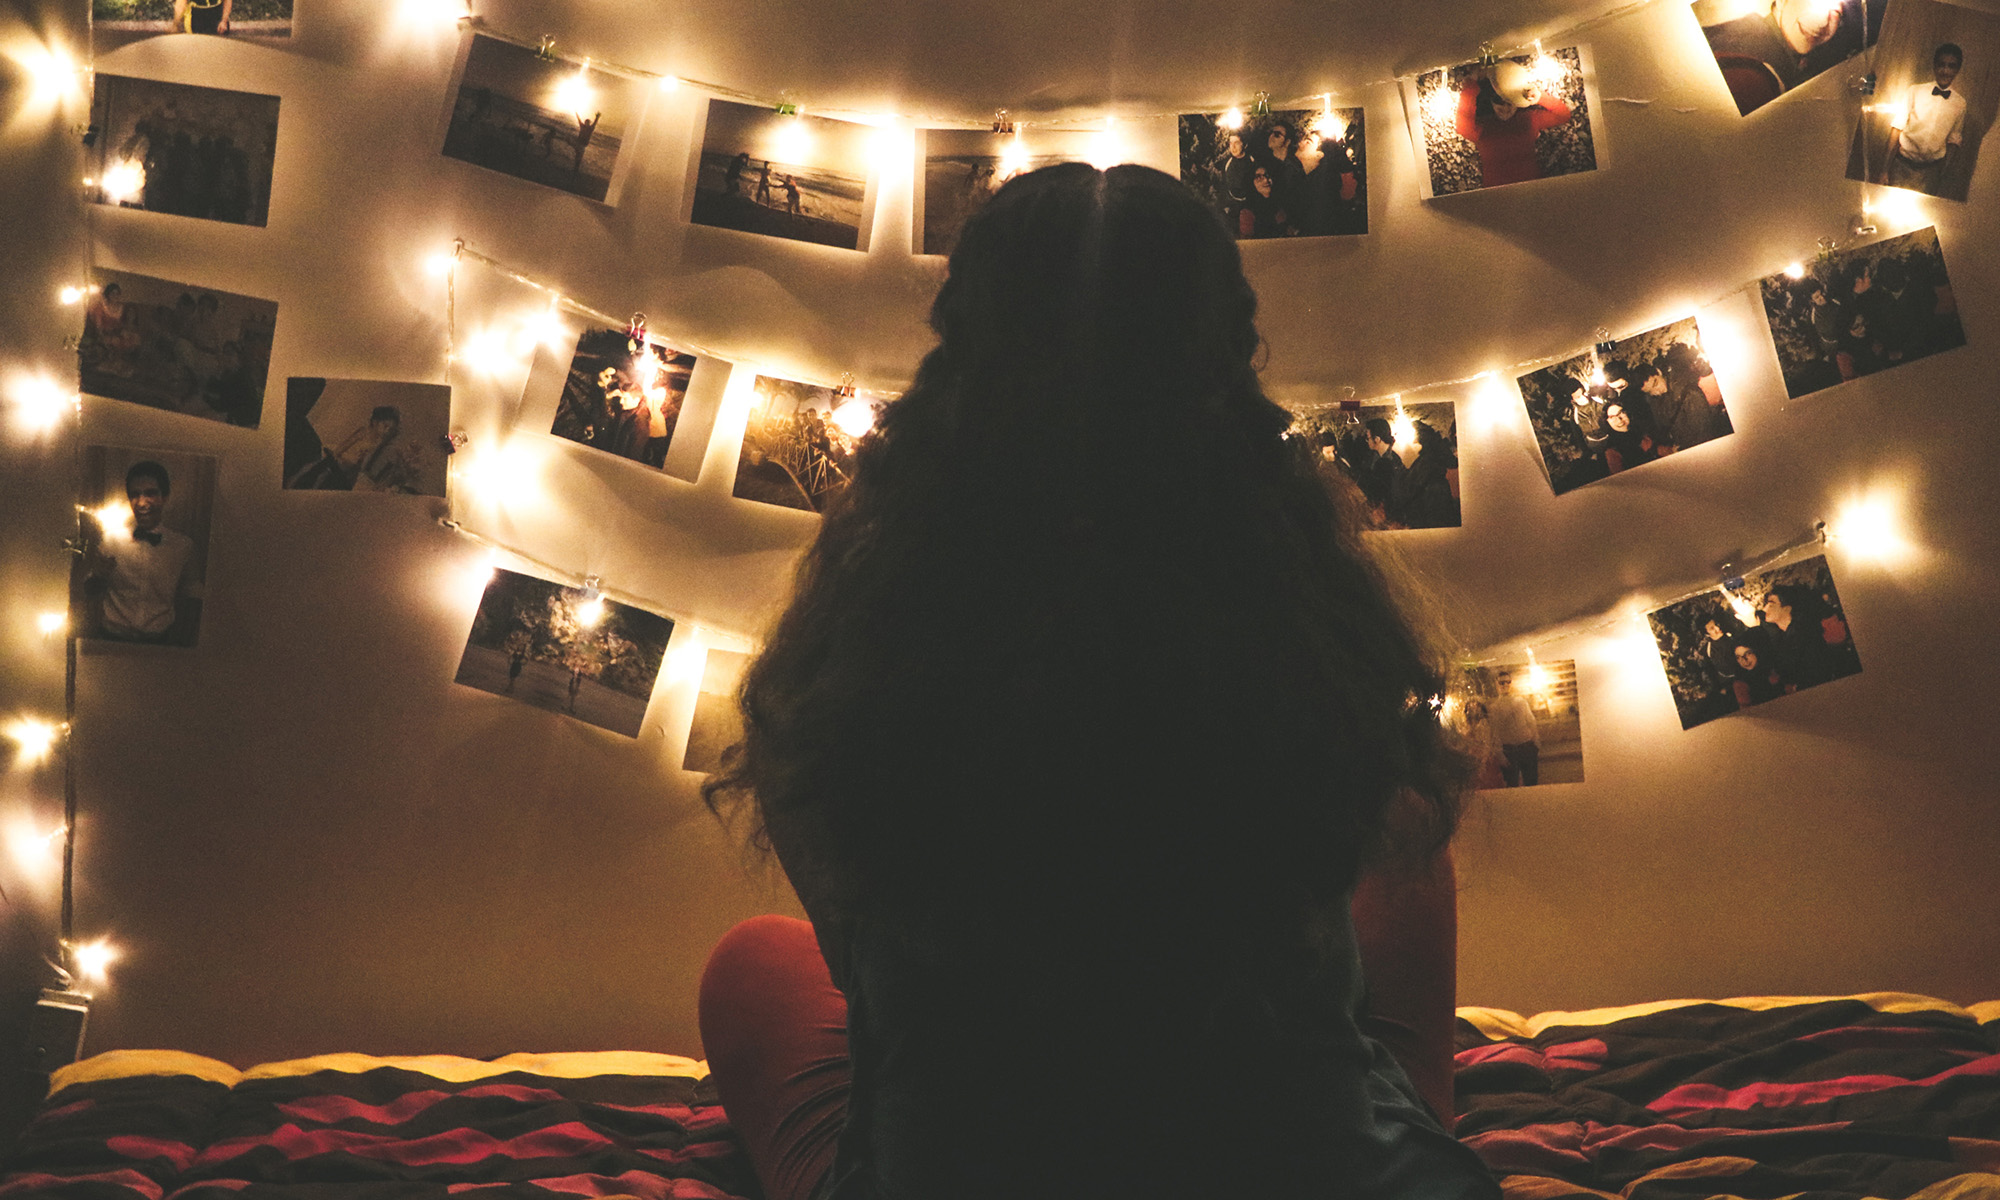 Woman looking up photo display with lights in dimly lit room